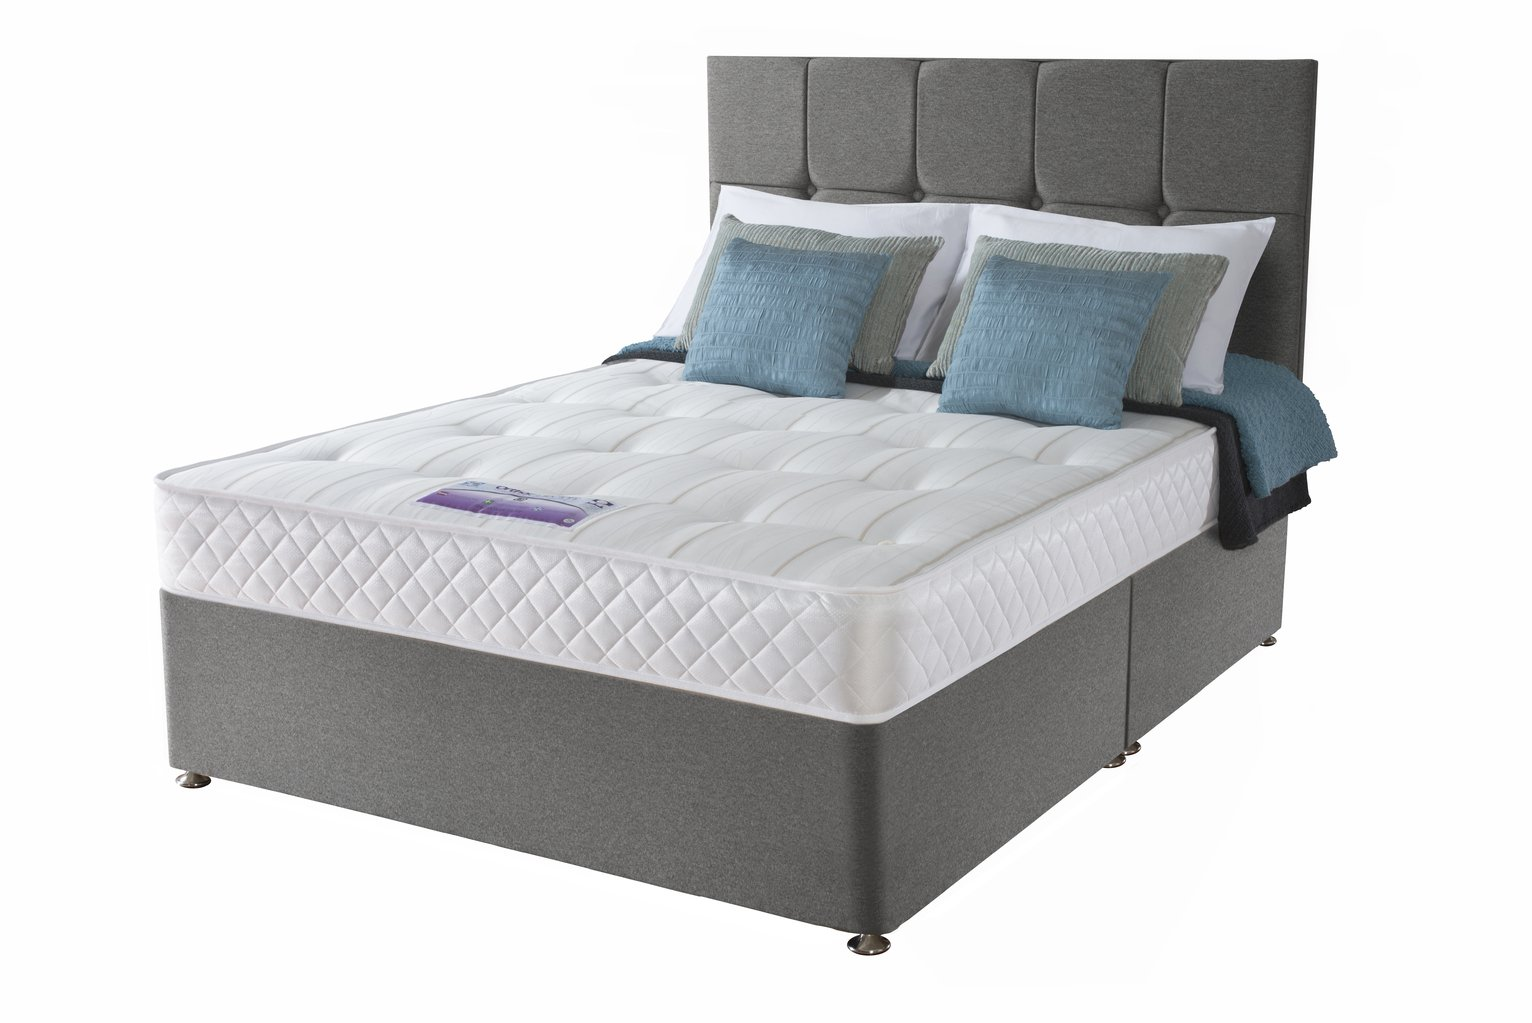 Sealy - Posturepedic Firm Ortho - Kingsize - Divan Bed at Argos